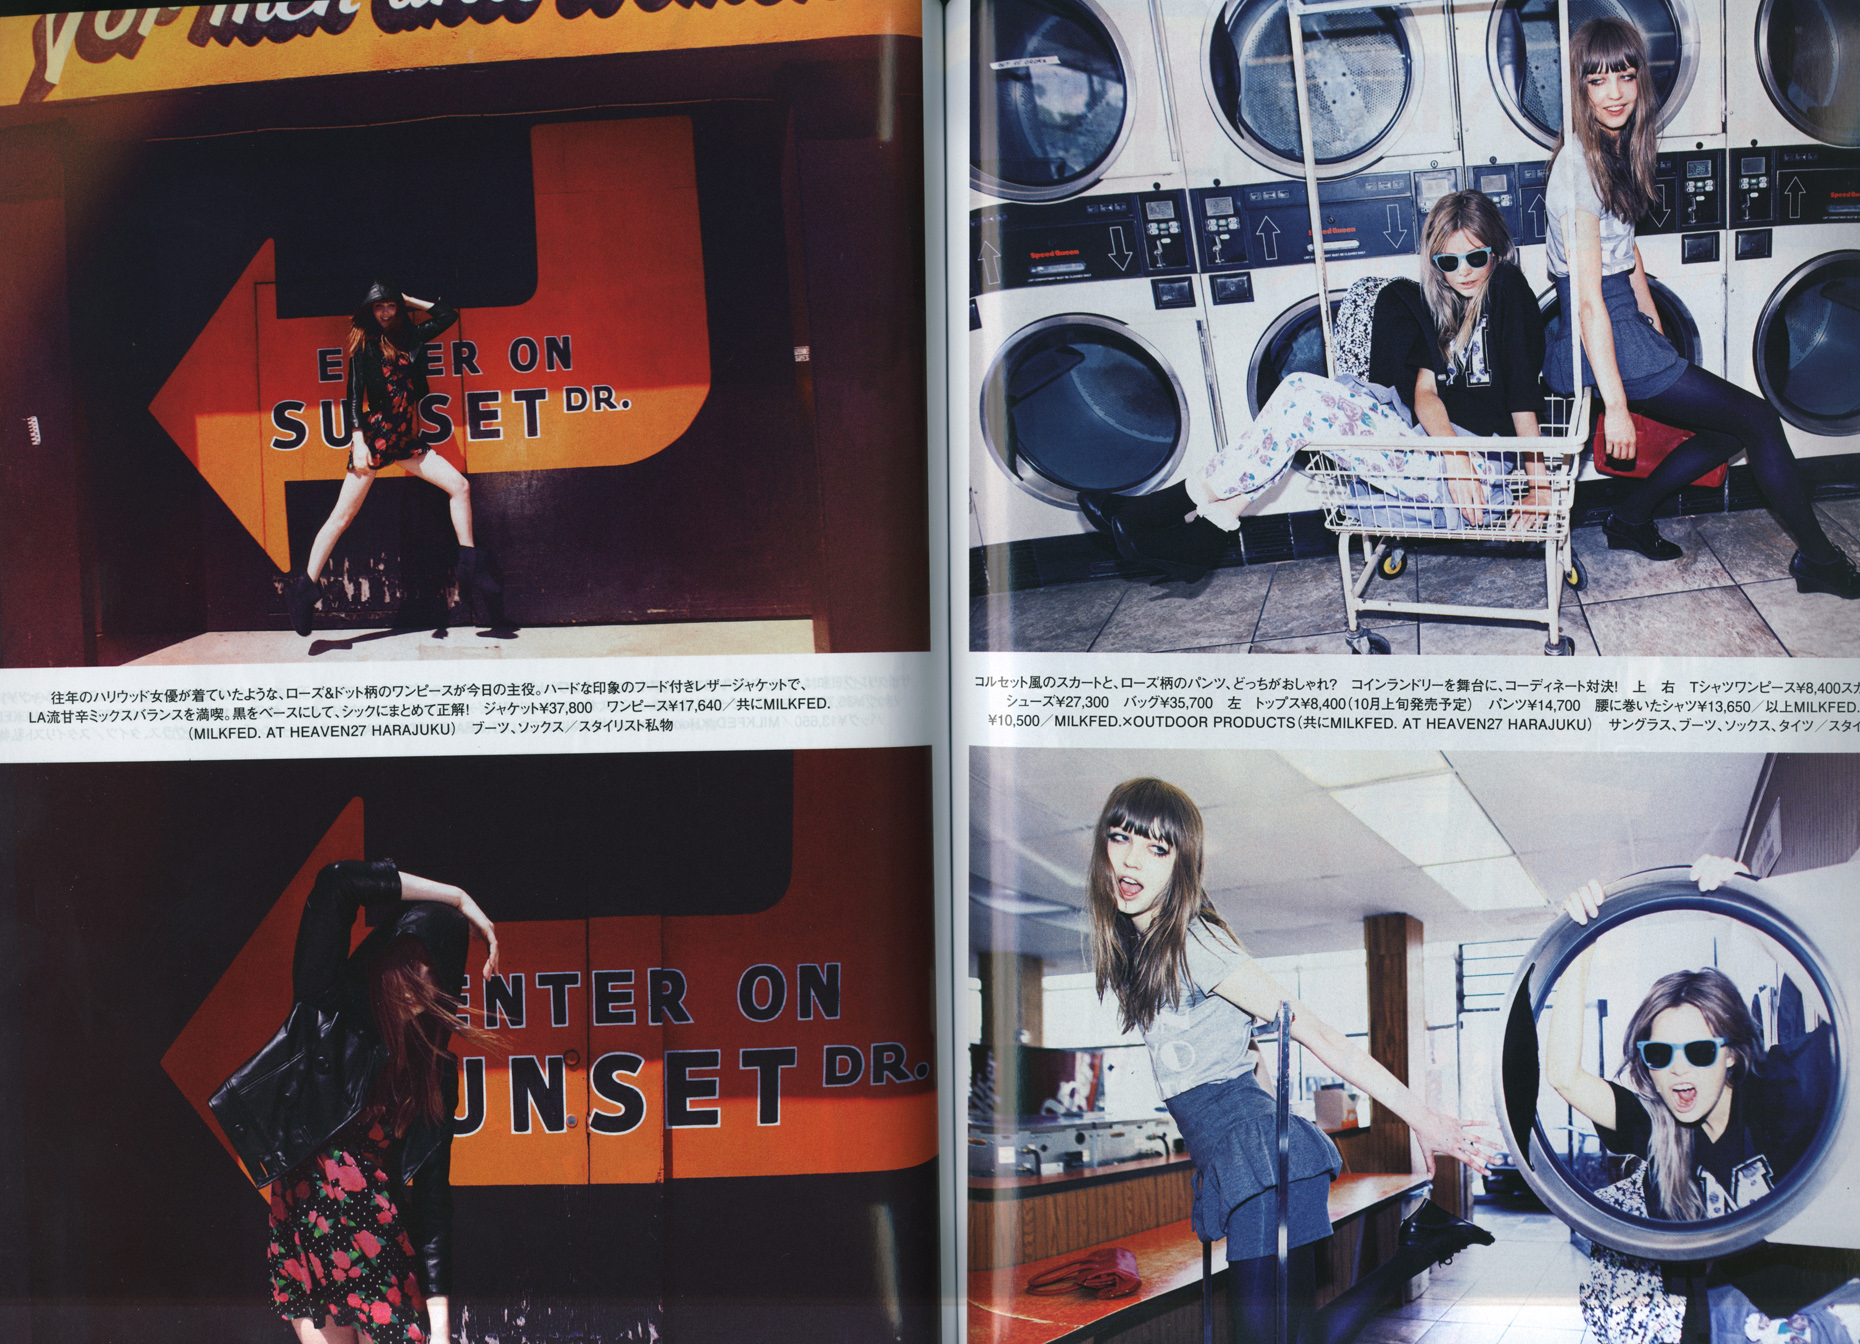 california girls elle japan 2 oct 2010.jpg